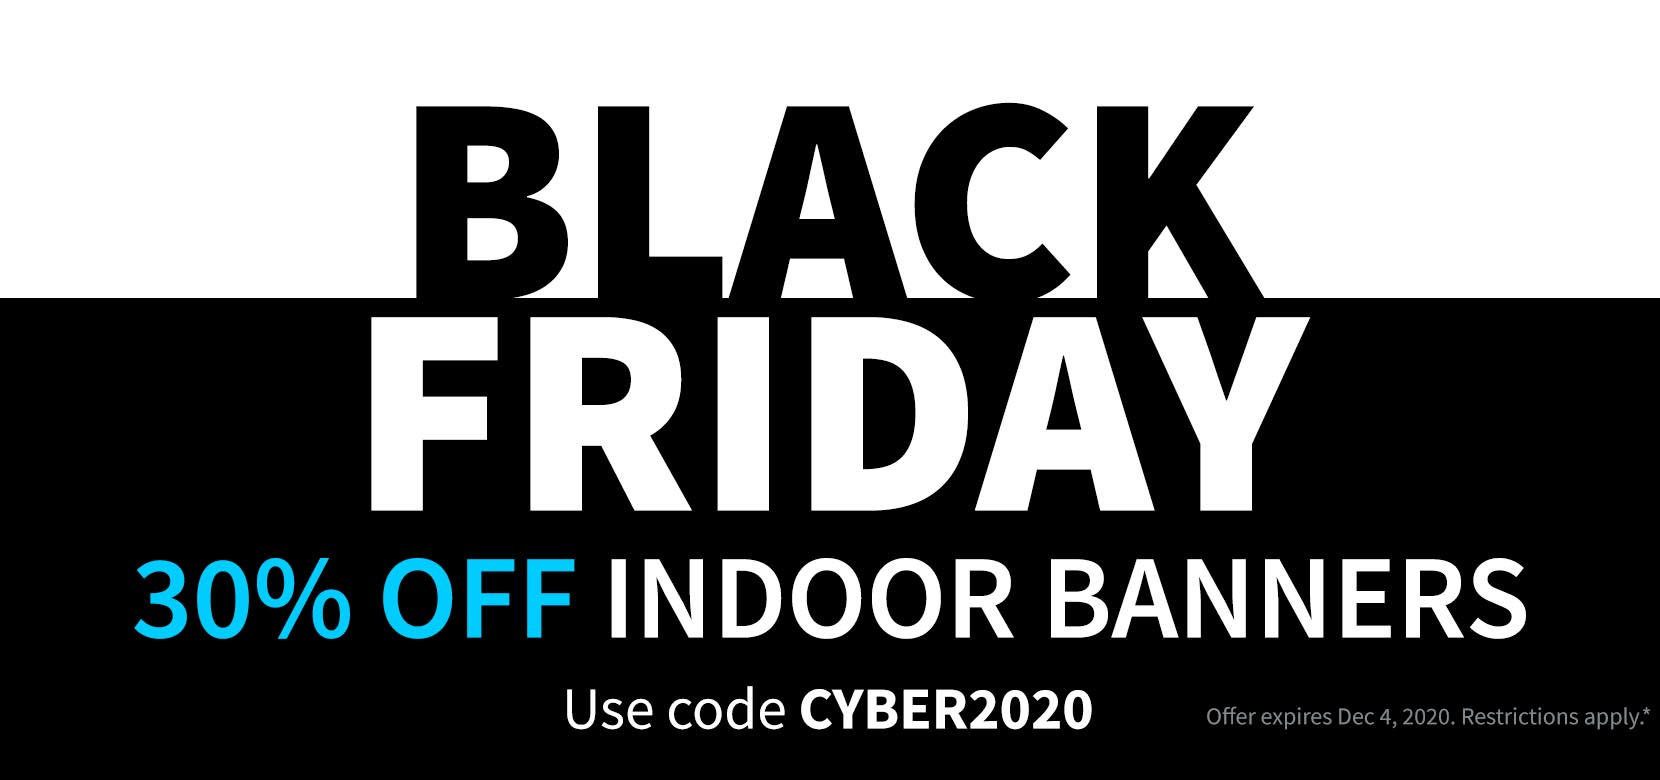 Black Friday CYBER2020 Indoor Banners